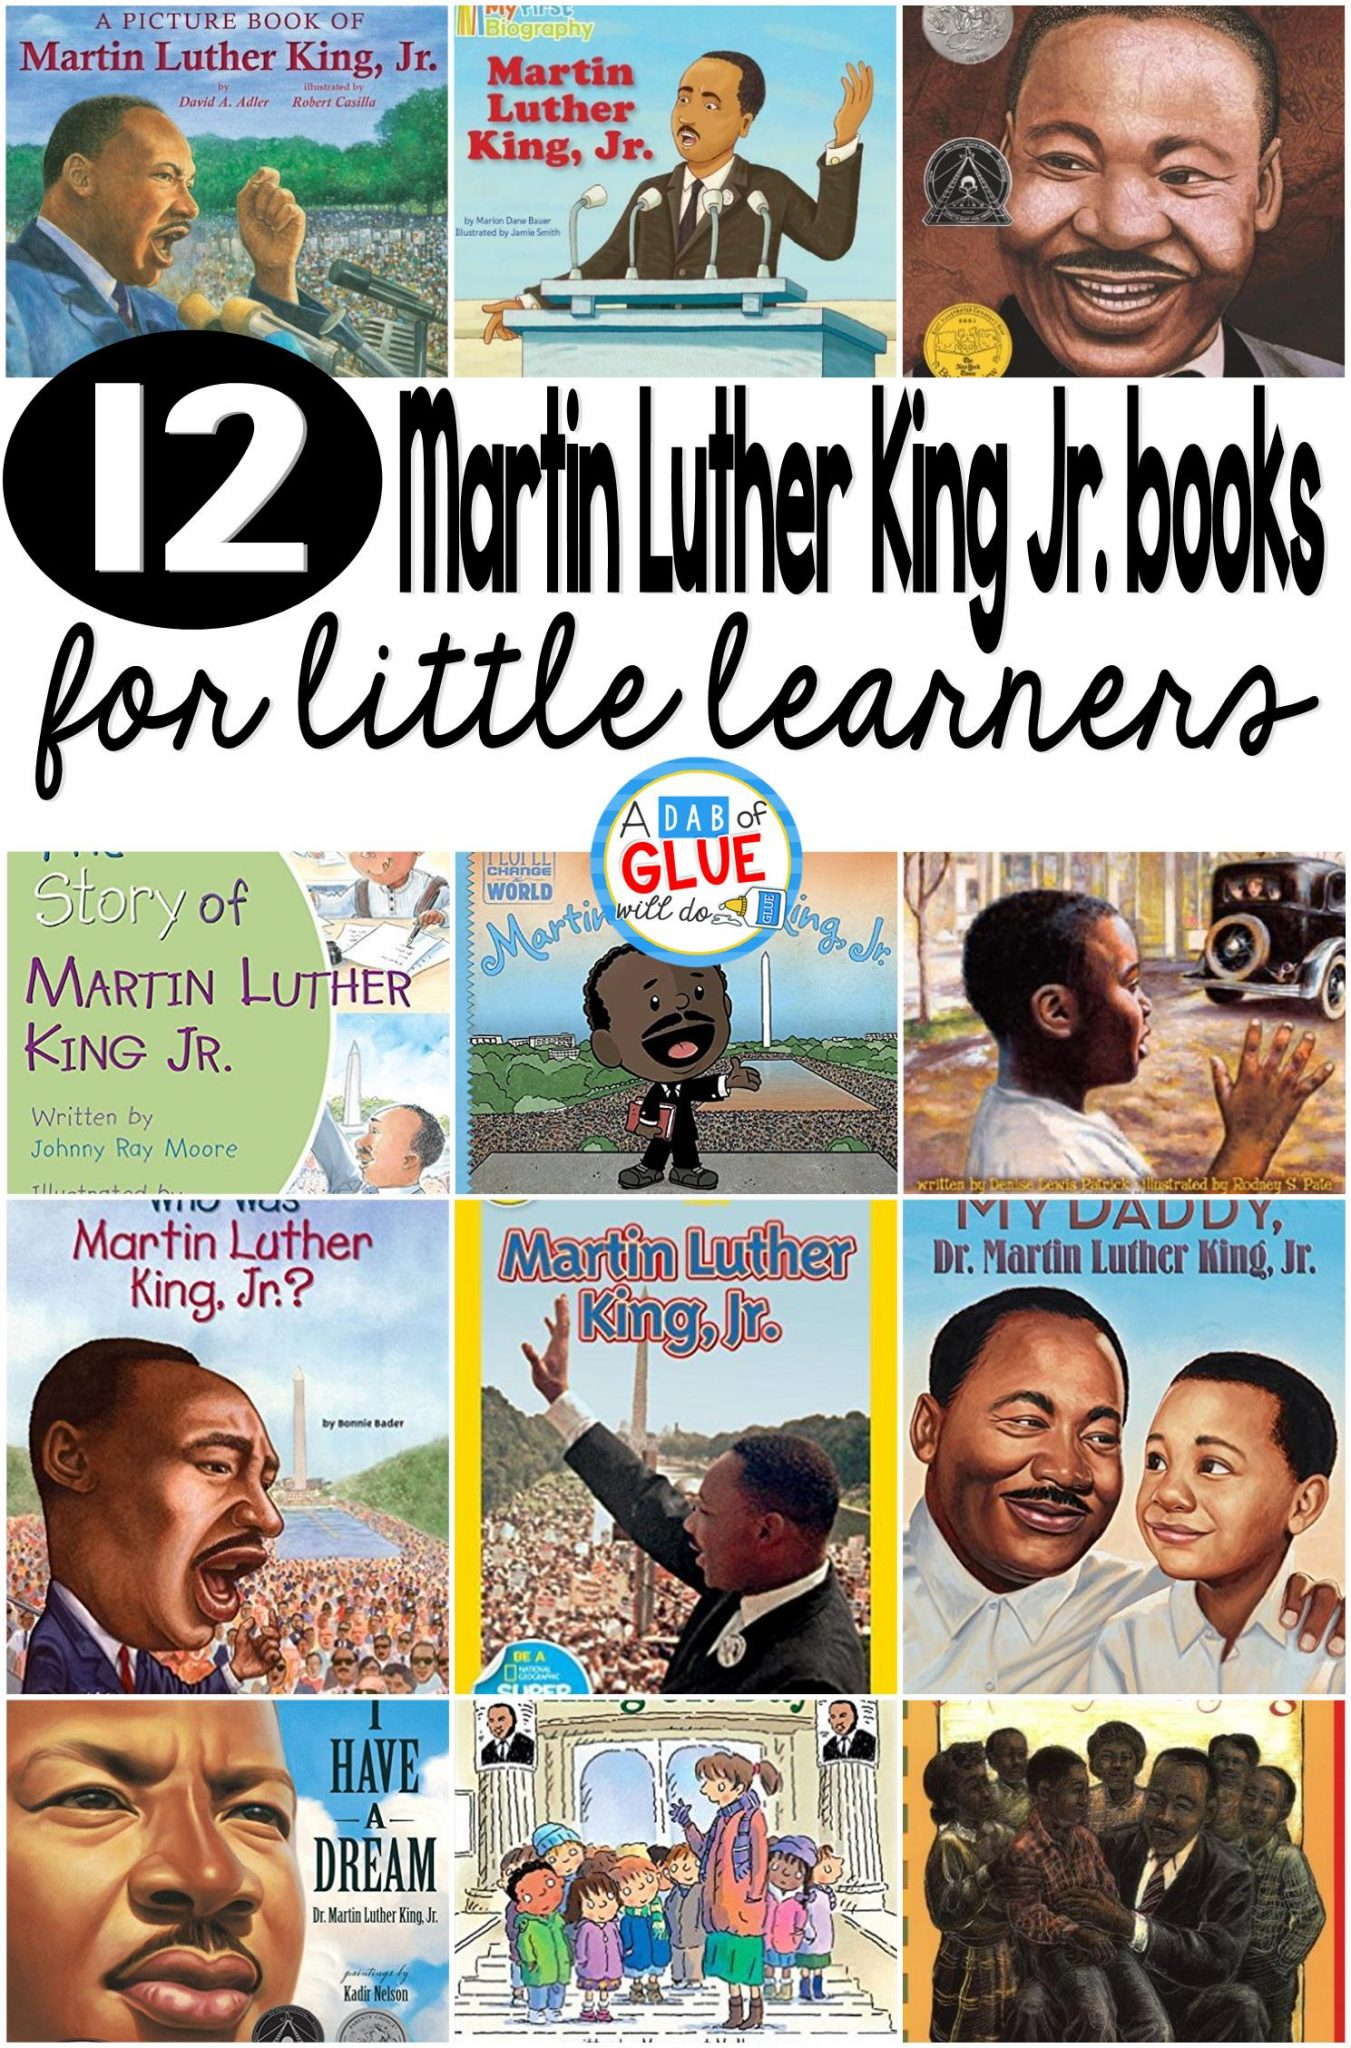 Our 12 Favorite Martin Luther King Jr Books Are Perfect For Your MLK Lesson Plans